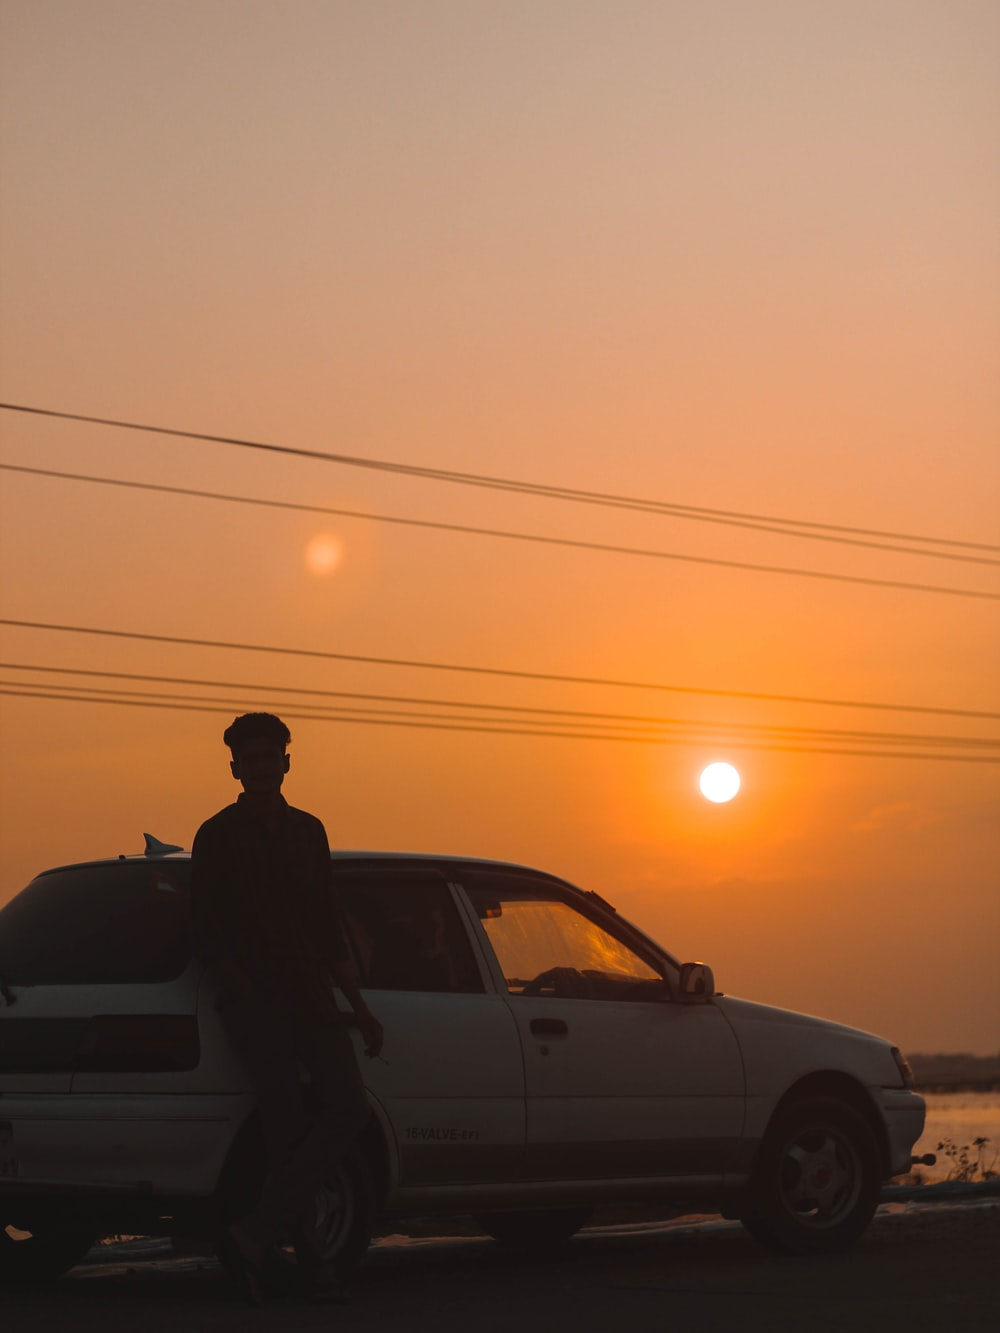 silhouette of man standing beside car during sunset